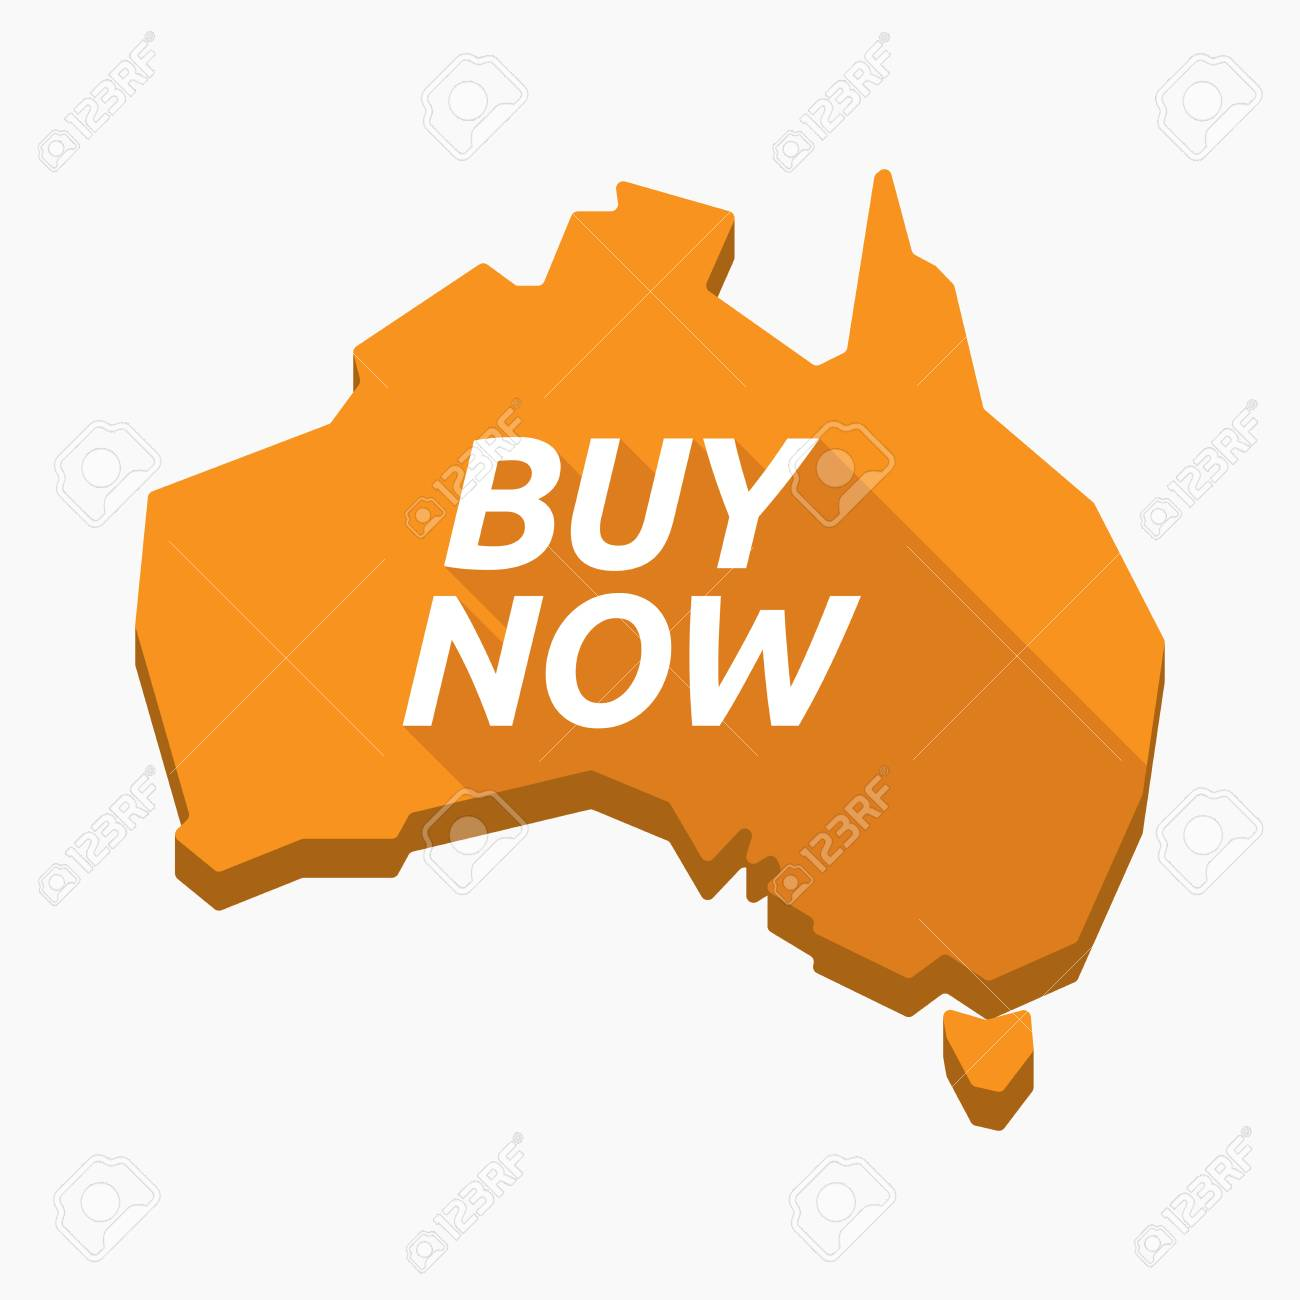 Buy Map Of Australia.Illustration Of An Isolated Long Shadow Australia Map With